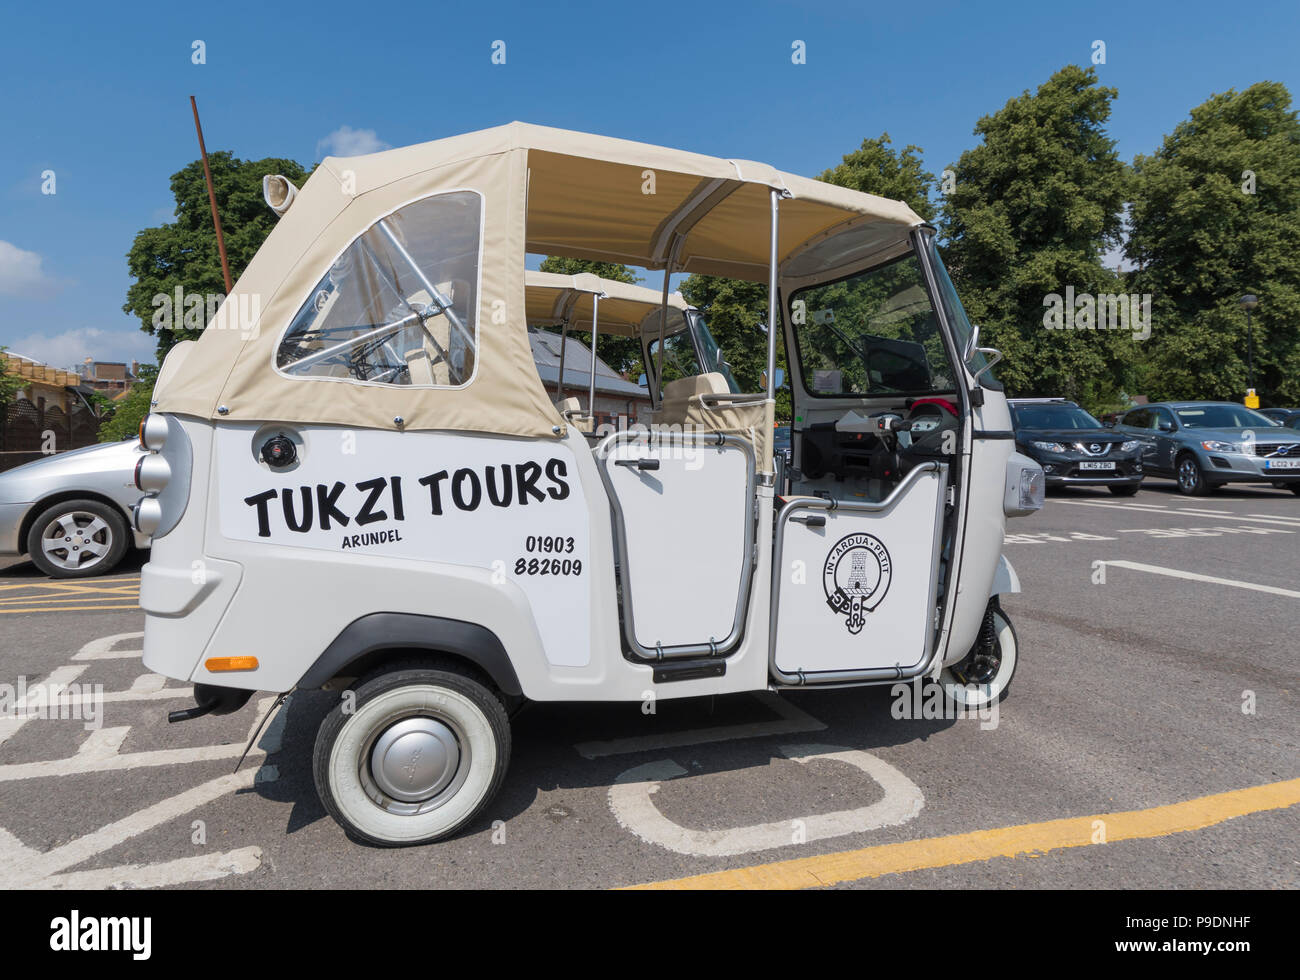 An empty white Piaggio Ape Calessino 3 wheeled cart (commonly known as a Tuk Tuk vehicle) from Tukzi Tours in Arundel, West Sussex, England, UK. - Stock Image